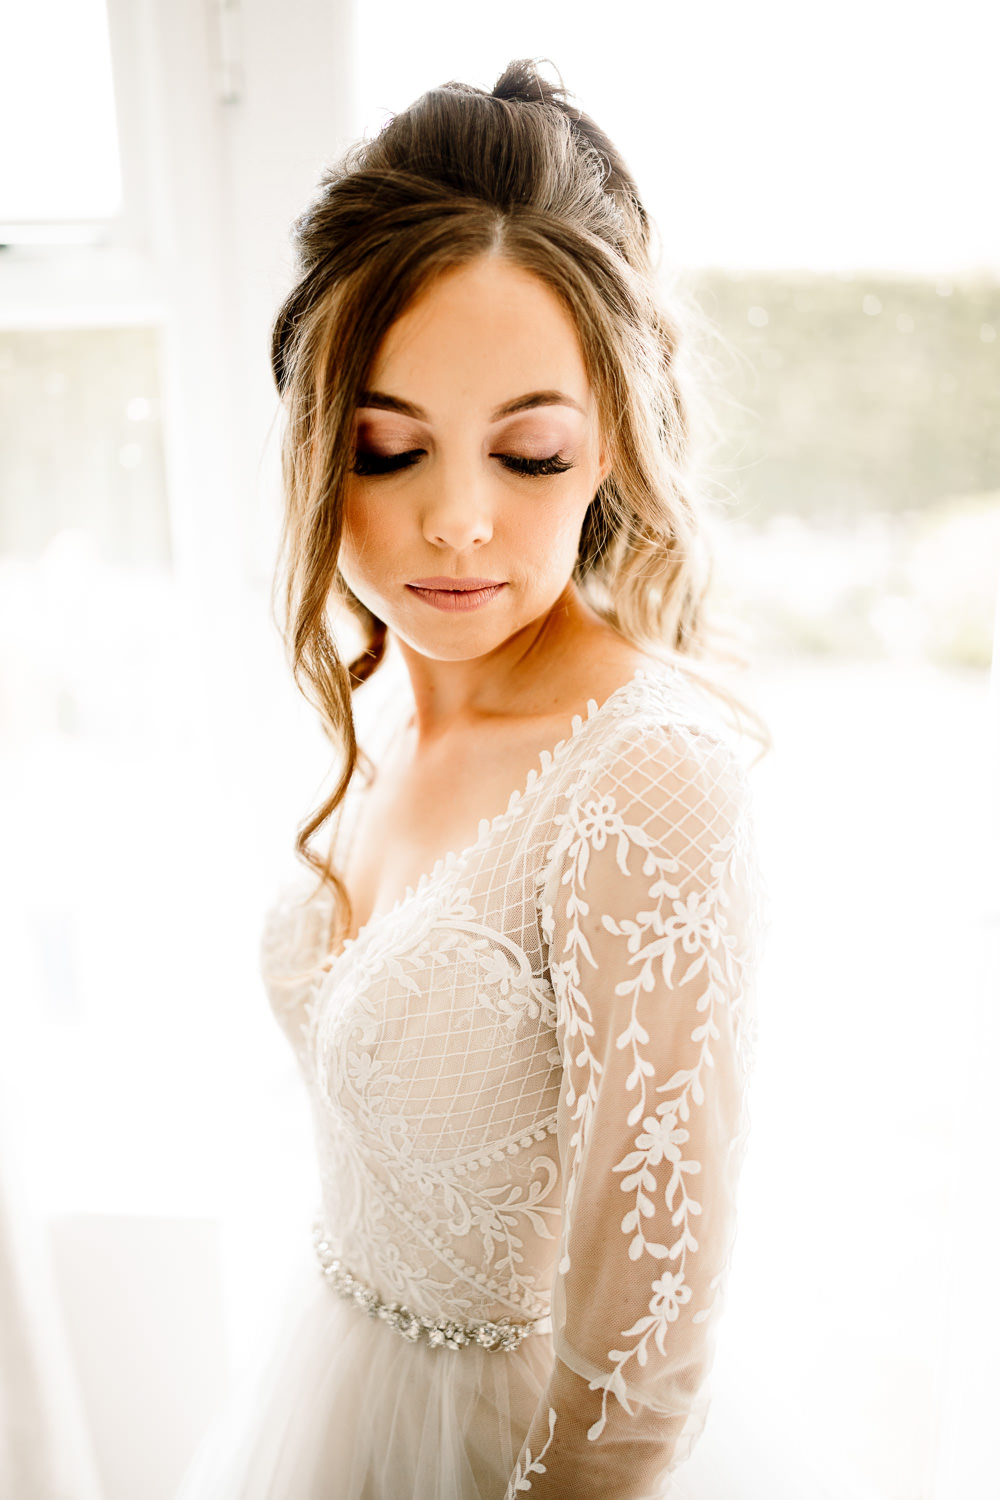 Bride Bridal Hair Curls Waves Make Up Wharfedale Grange Wedding Hayley Baxter Photography